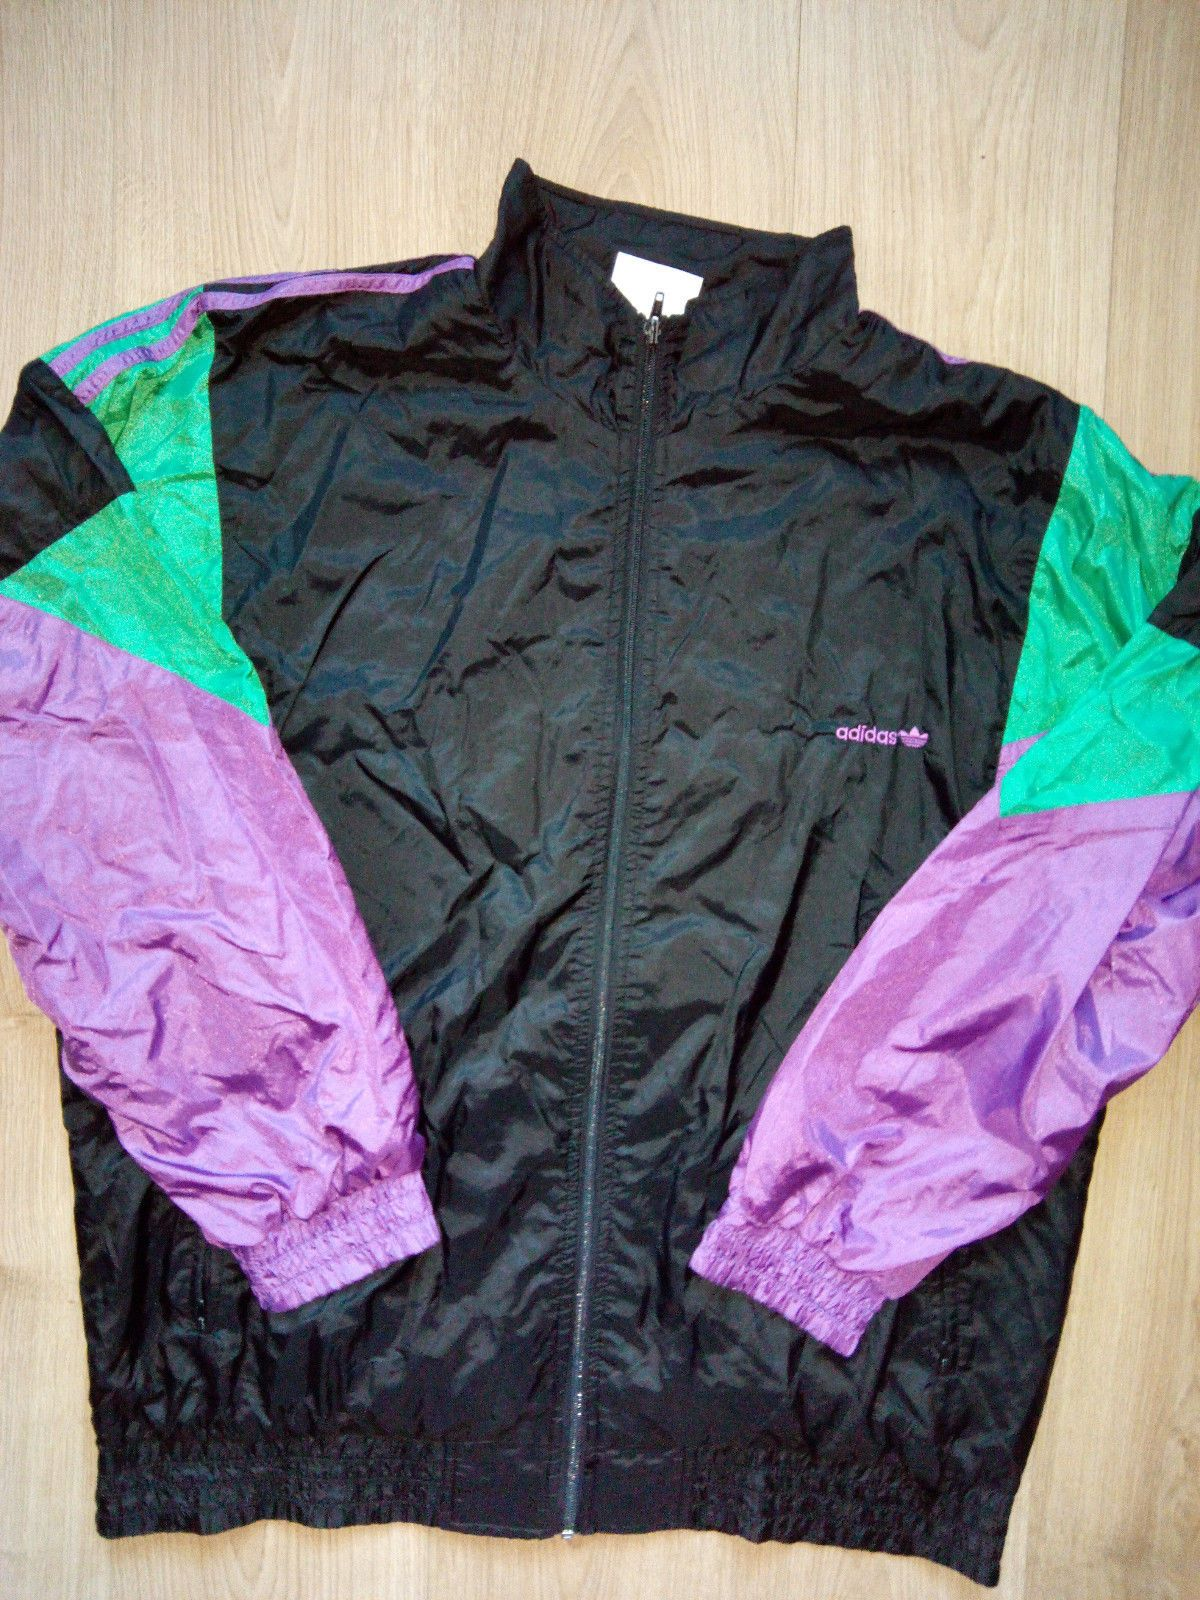 75b0bb3c3549e Adidas Originals 90's Vintage Mens Tracksuit Top Jacket Nylon in Clothing,  Shoes & Accessories, Men's Clothing, Athletic Apparel | eBay